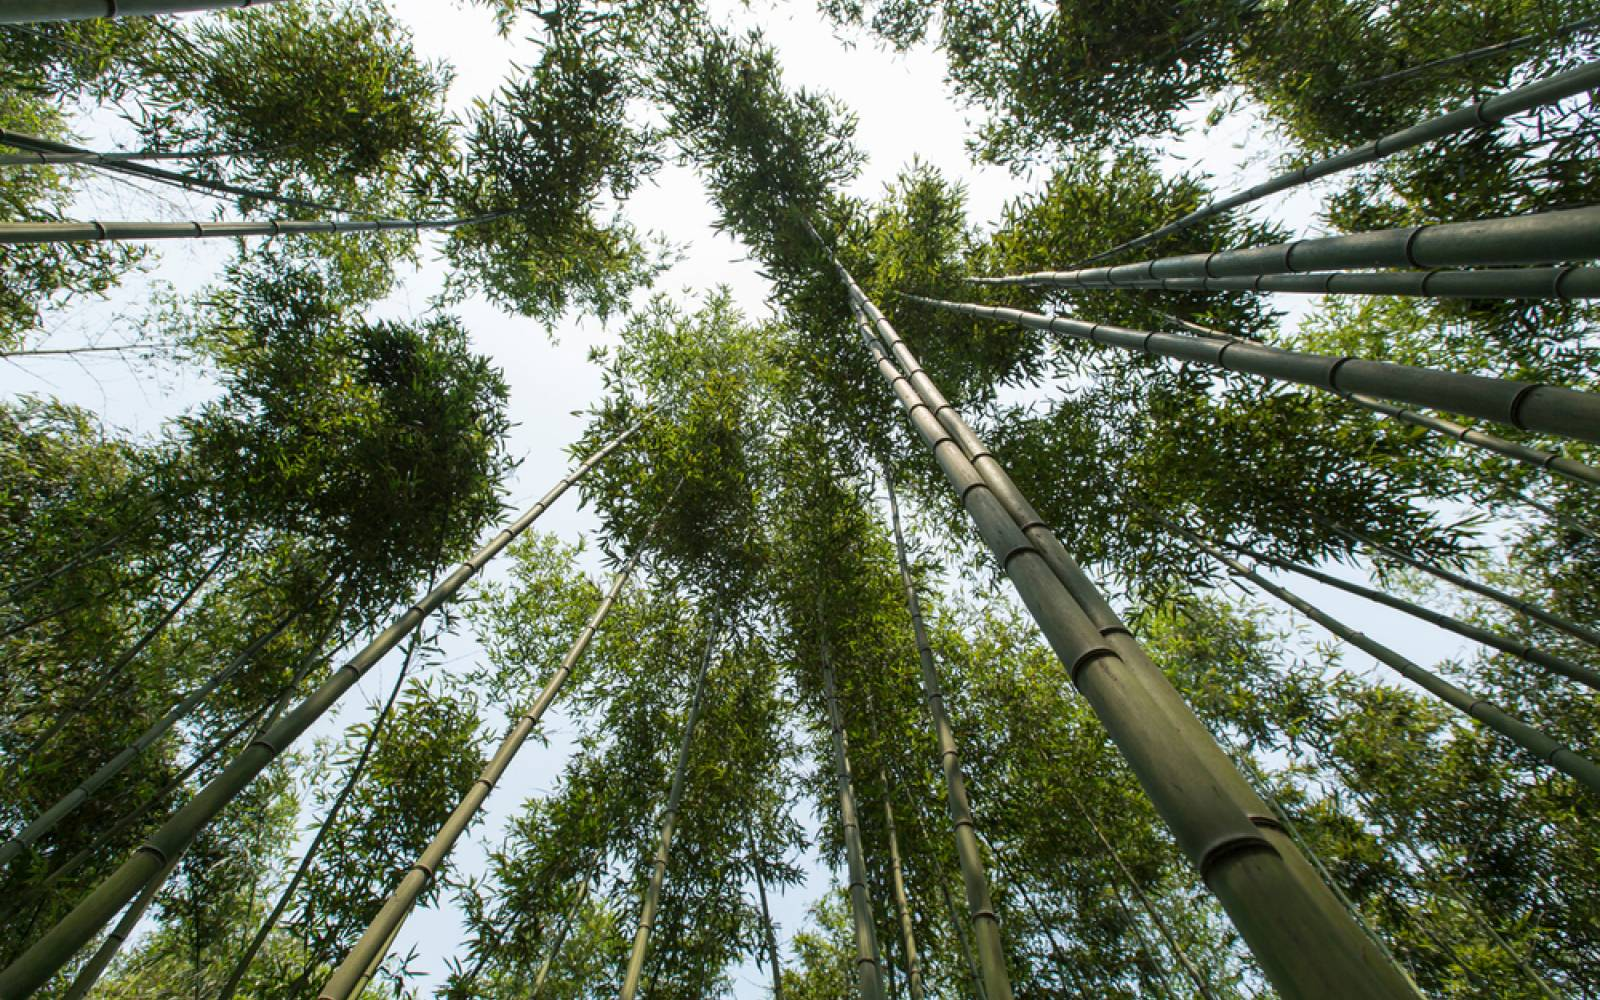 Bamboo forest from forest floor perspective